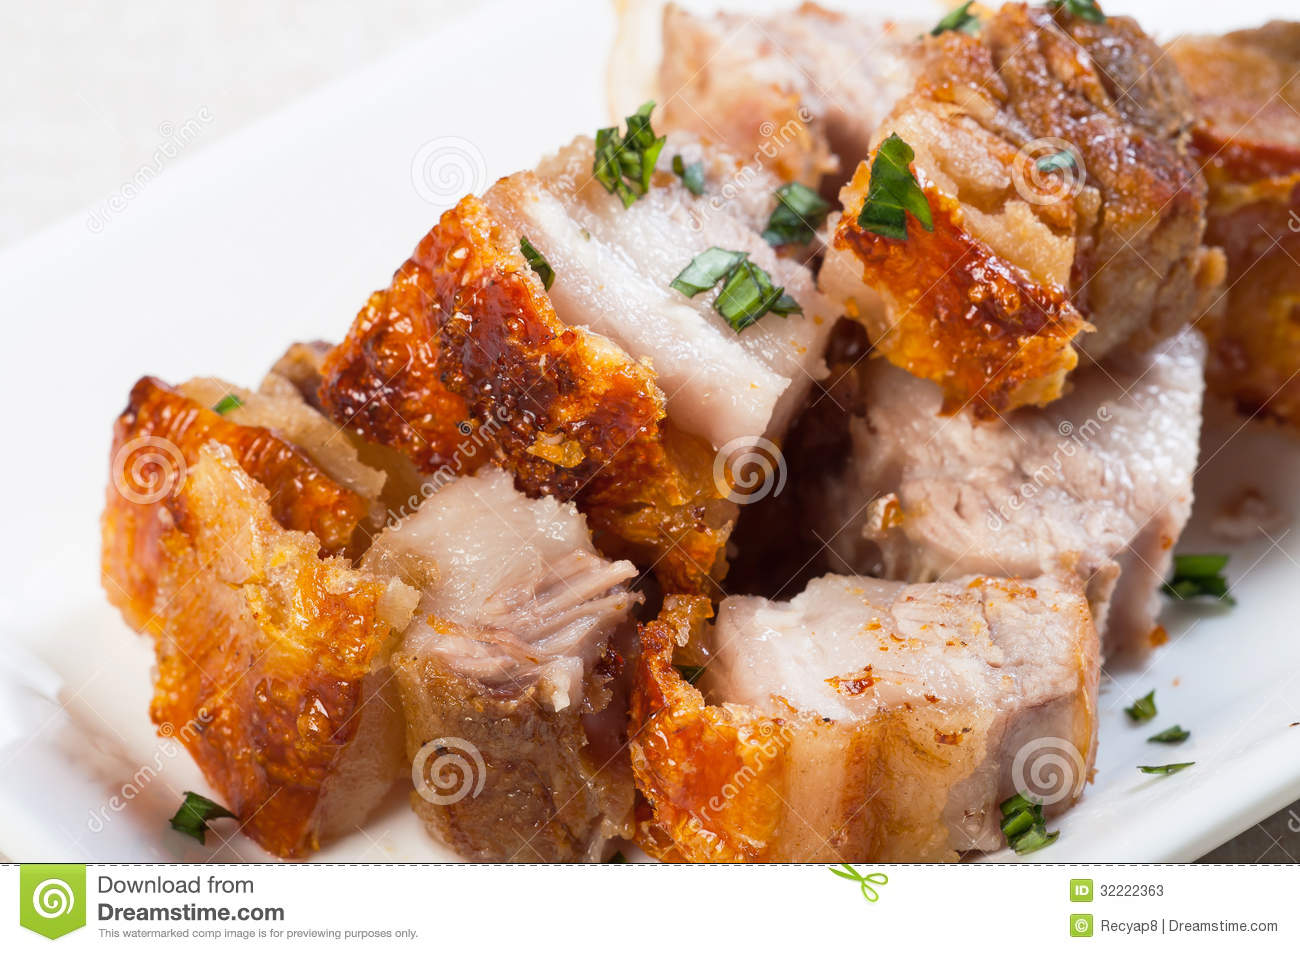 Deep Fried Pork Belly With Liver Sauce Stock Photos - Image: 32222363